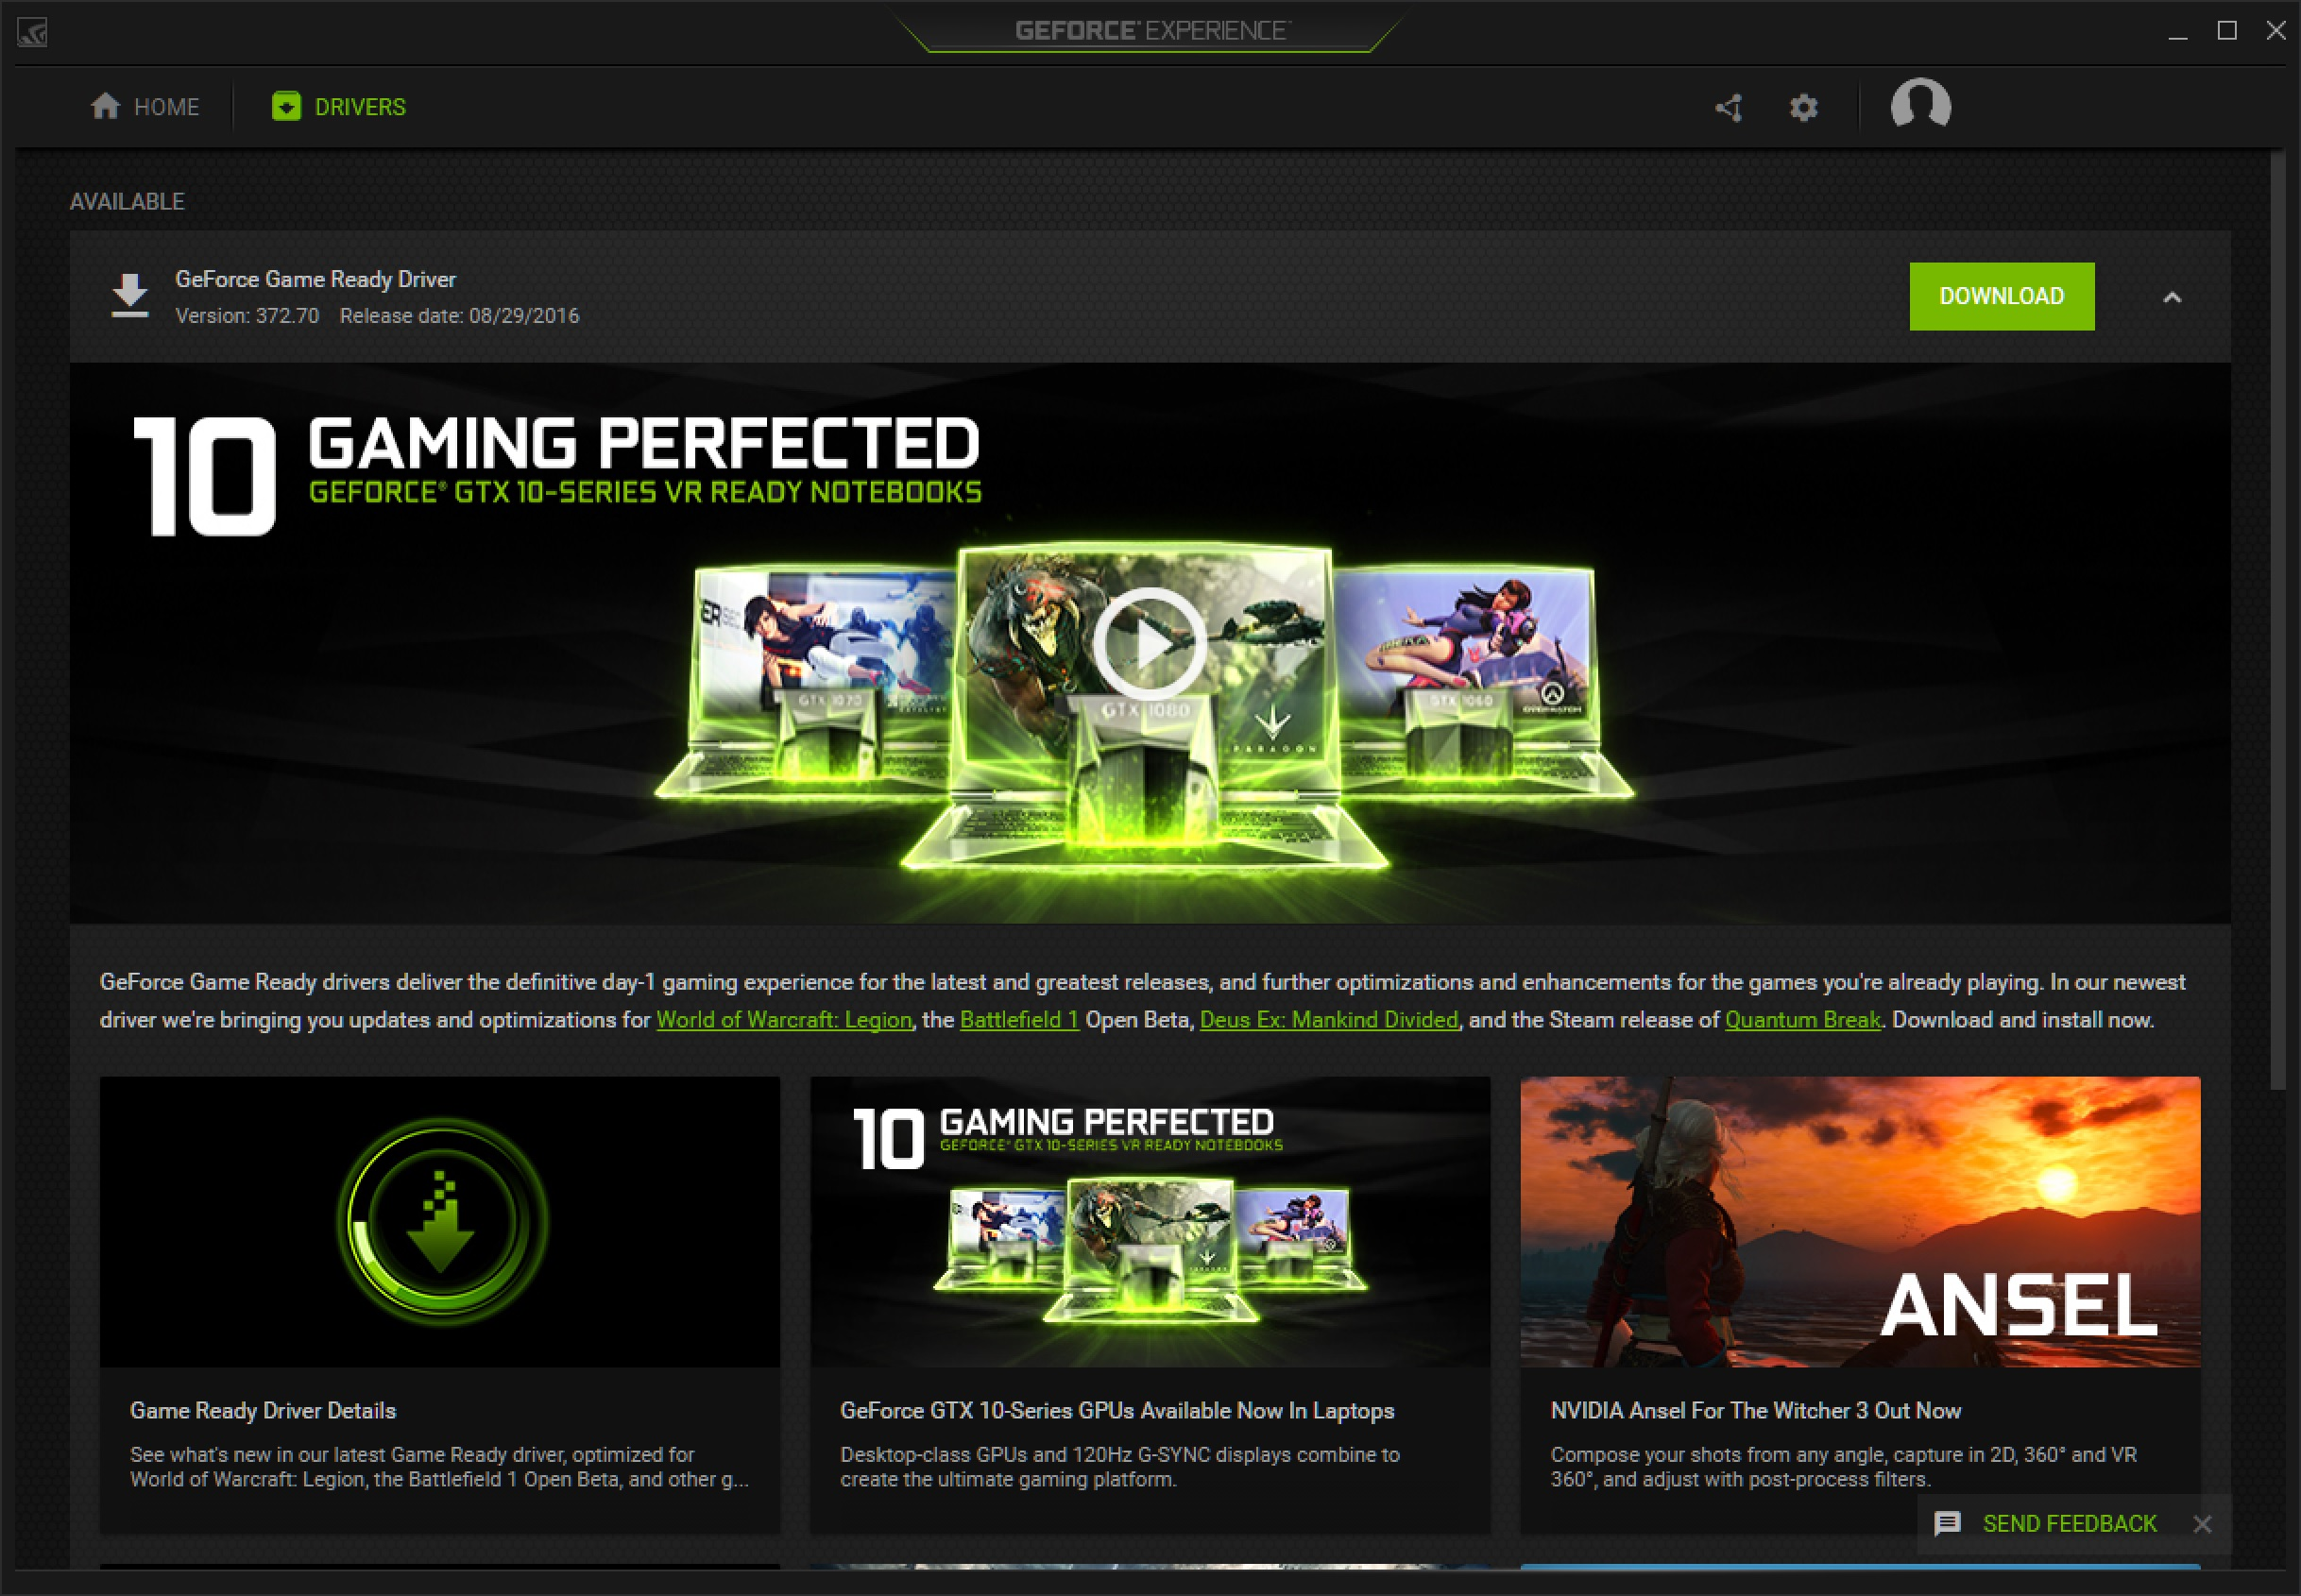 geforce experience experimental features checking for updates